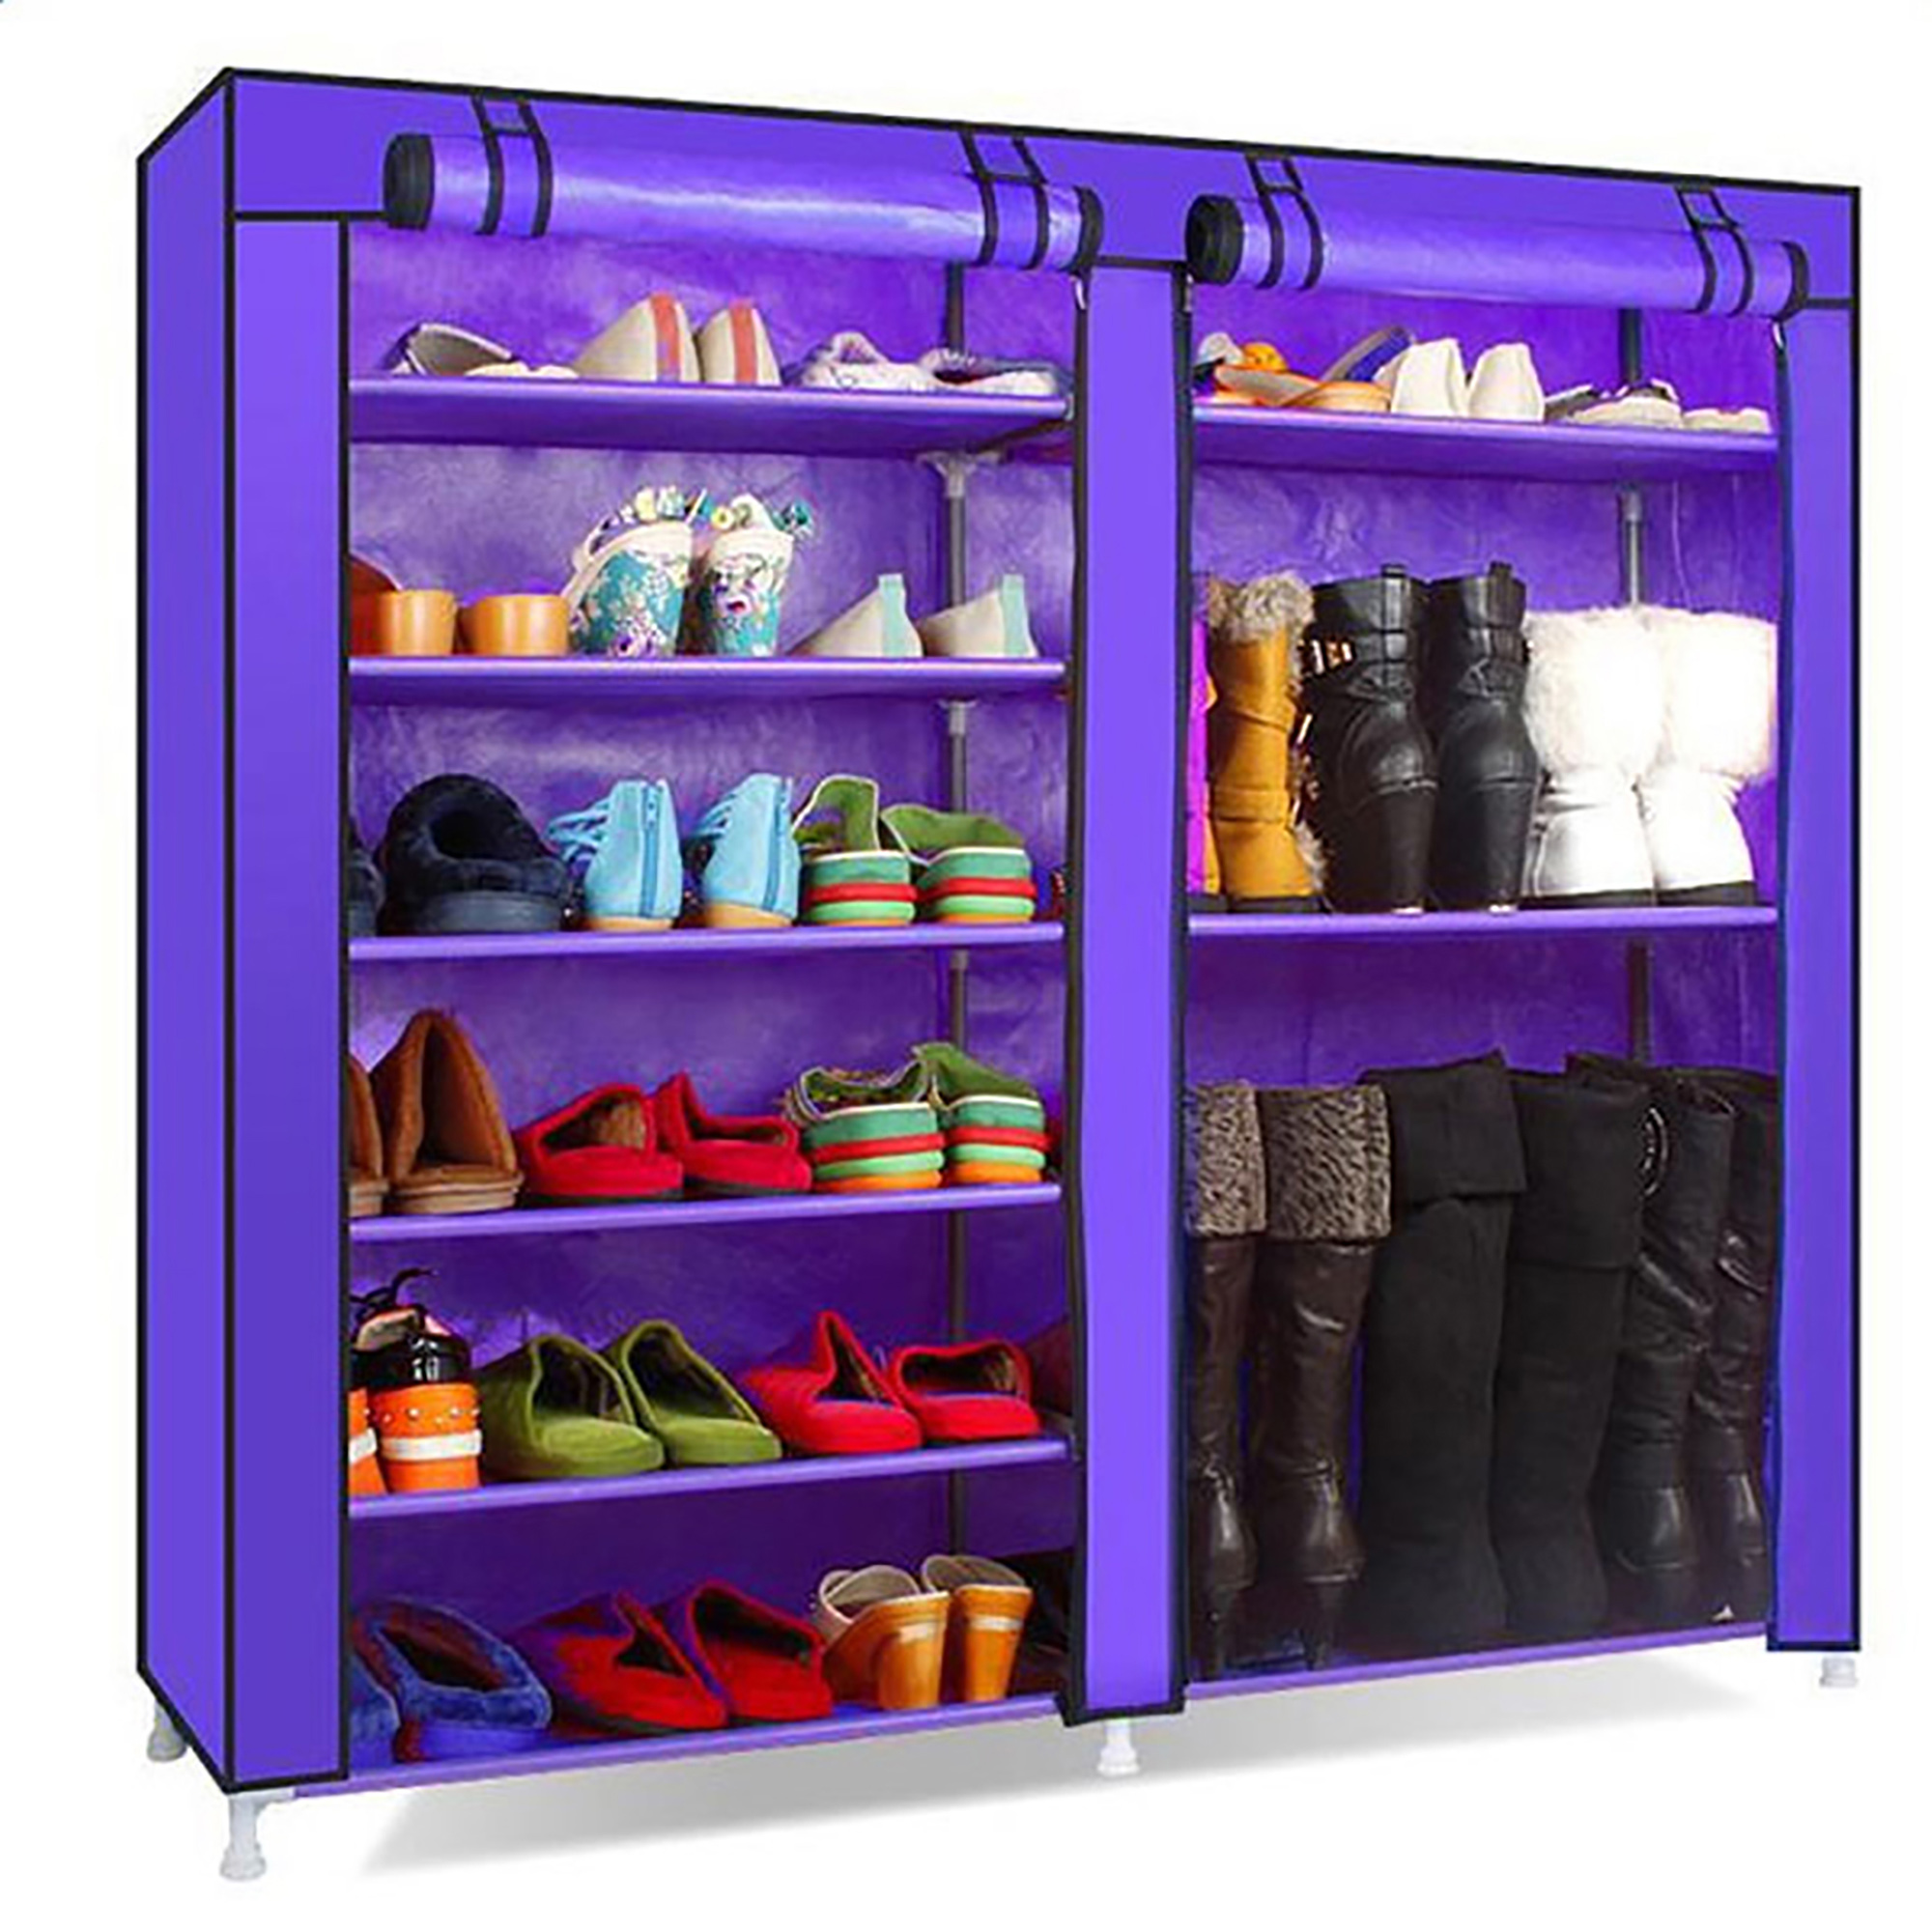 """Double Rows 9 Lattices Shoe Rack Organizer, Wall Bench Shoe Cabinet with doors for Home, (42.13"""" L x 11.02"""" W x 44.09"""" H)"""